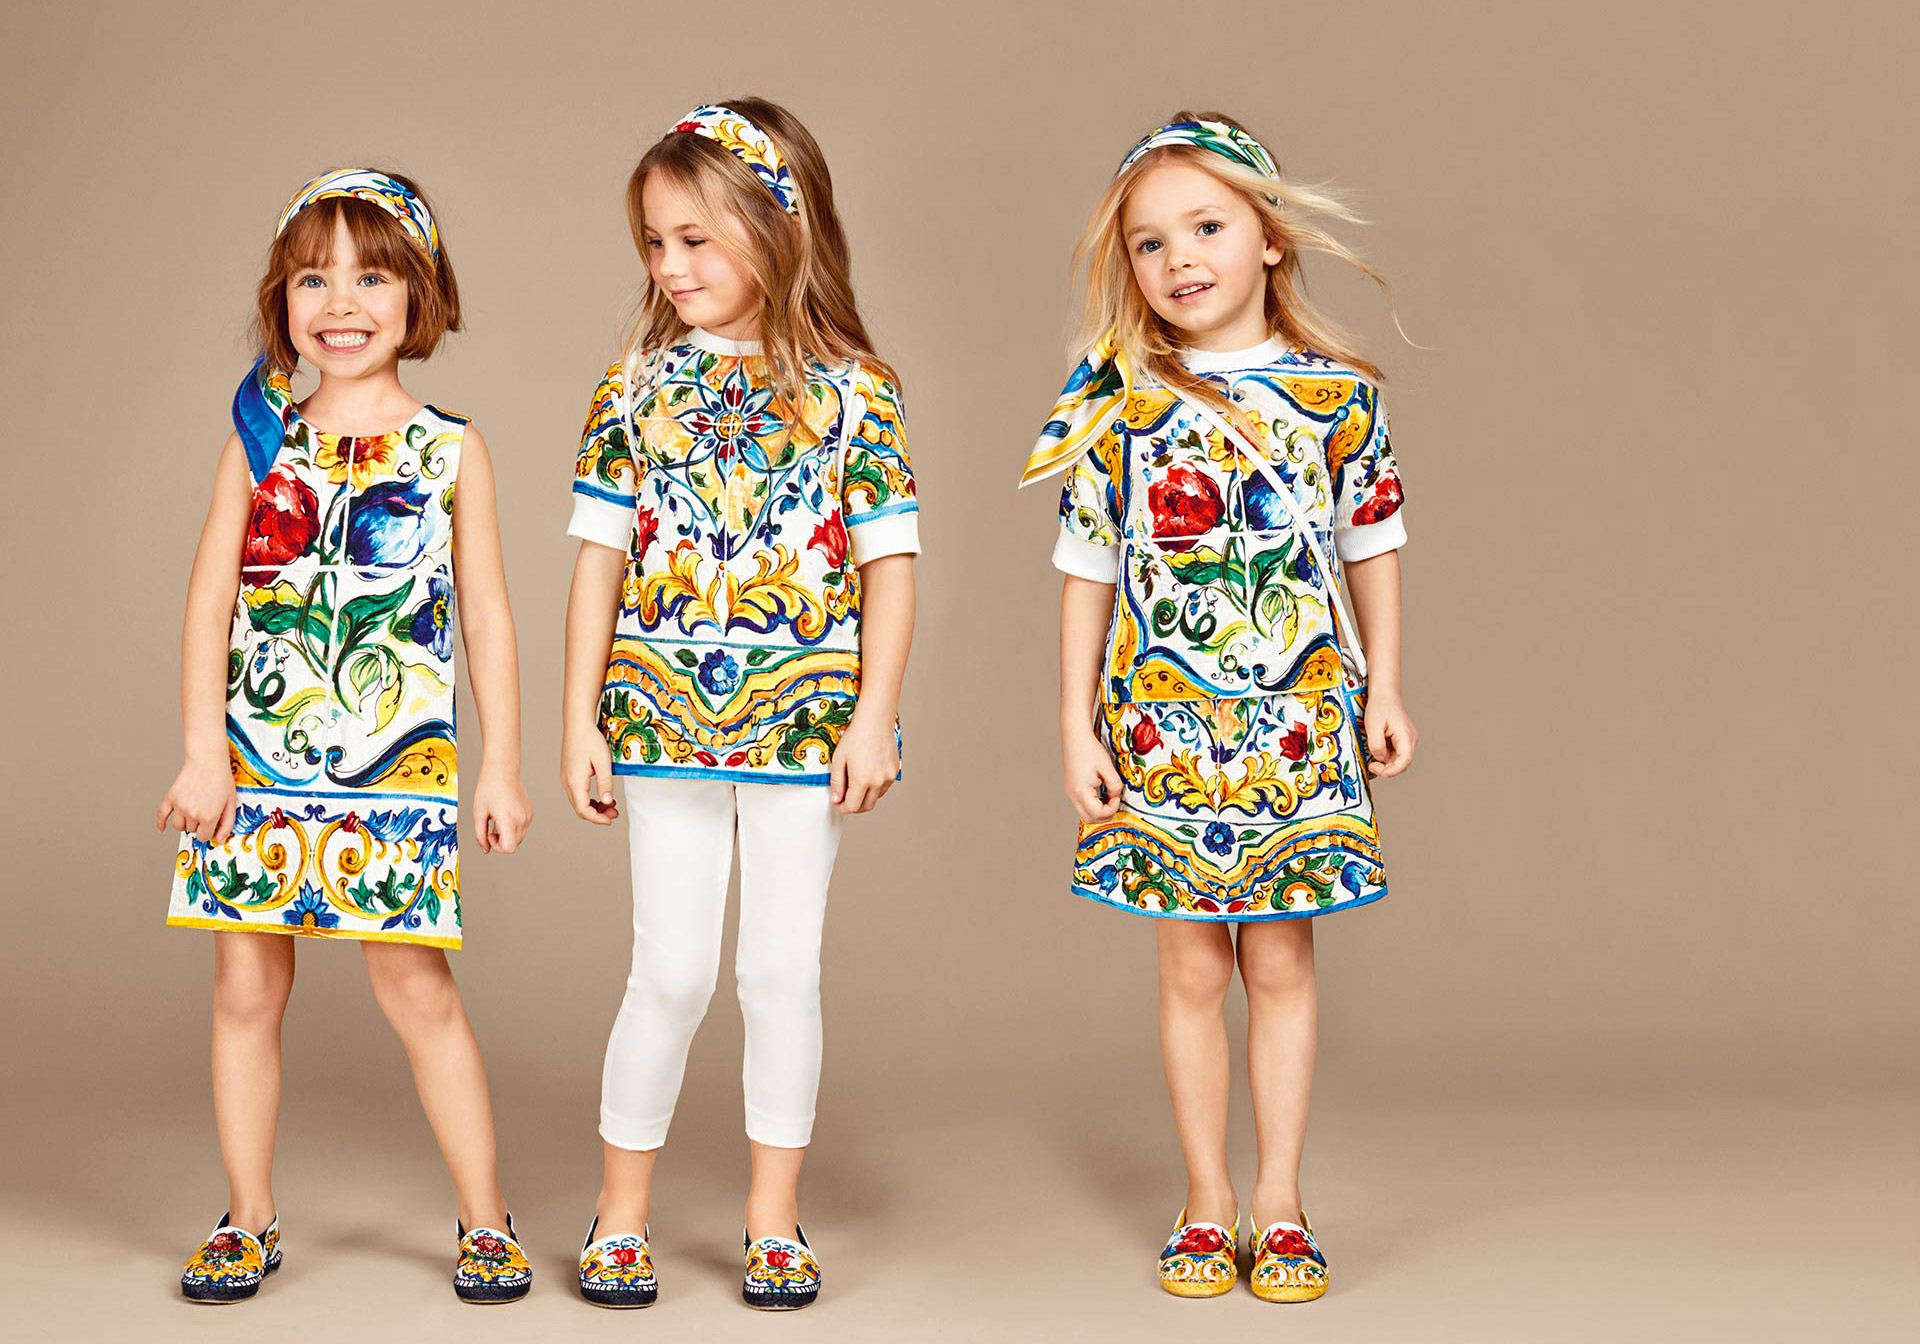 dolce-and-gabbana-winter-2017-child-collection-154 Casual Outfits for Kids-23 Cool Dresses for Baby Casual Style